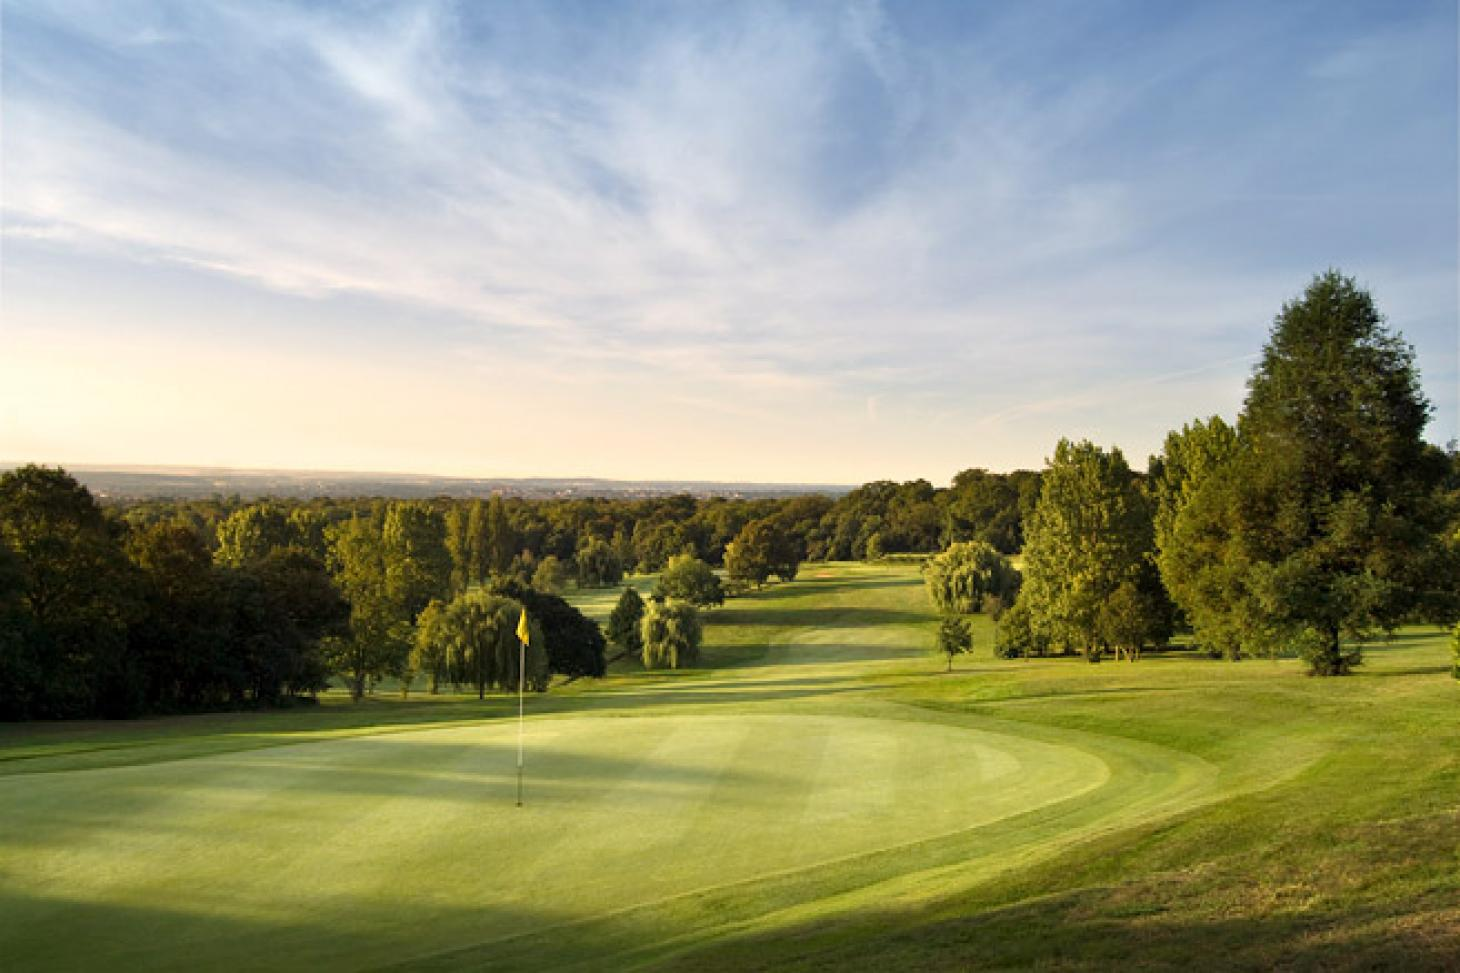 Shooters Hill Golf Club 18 hole golf course